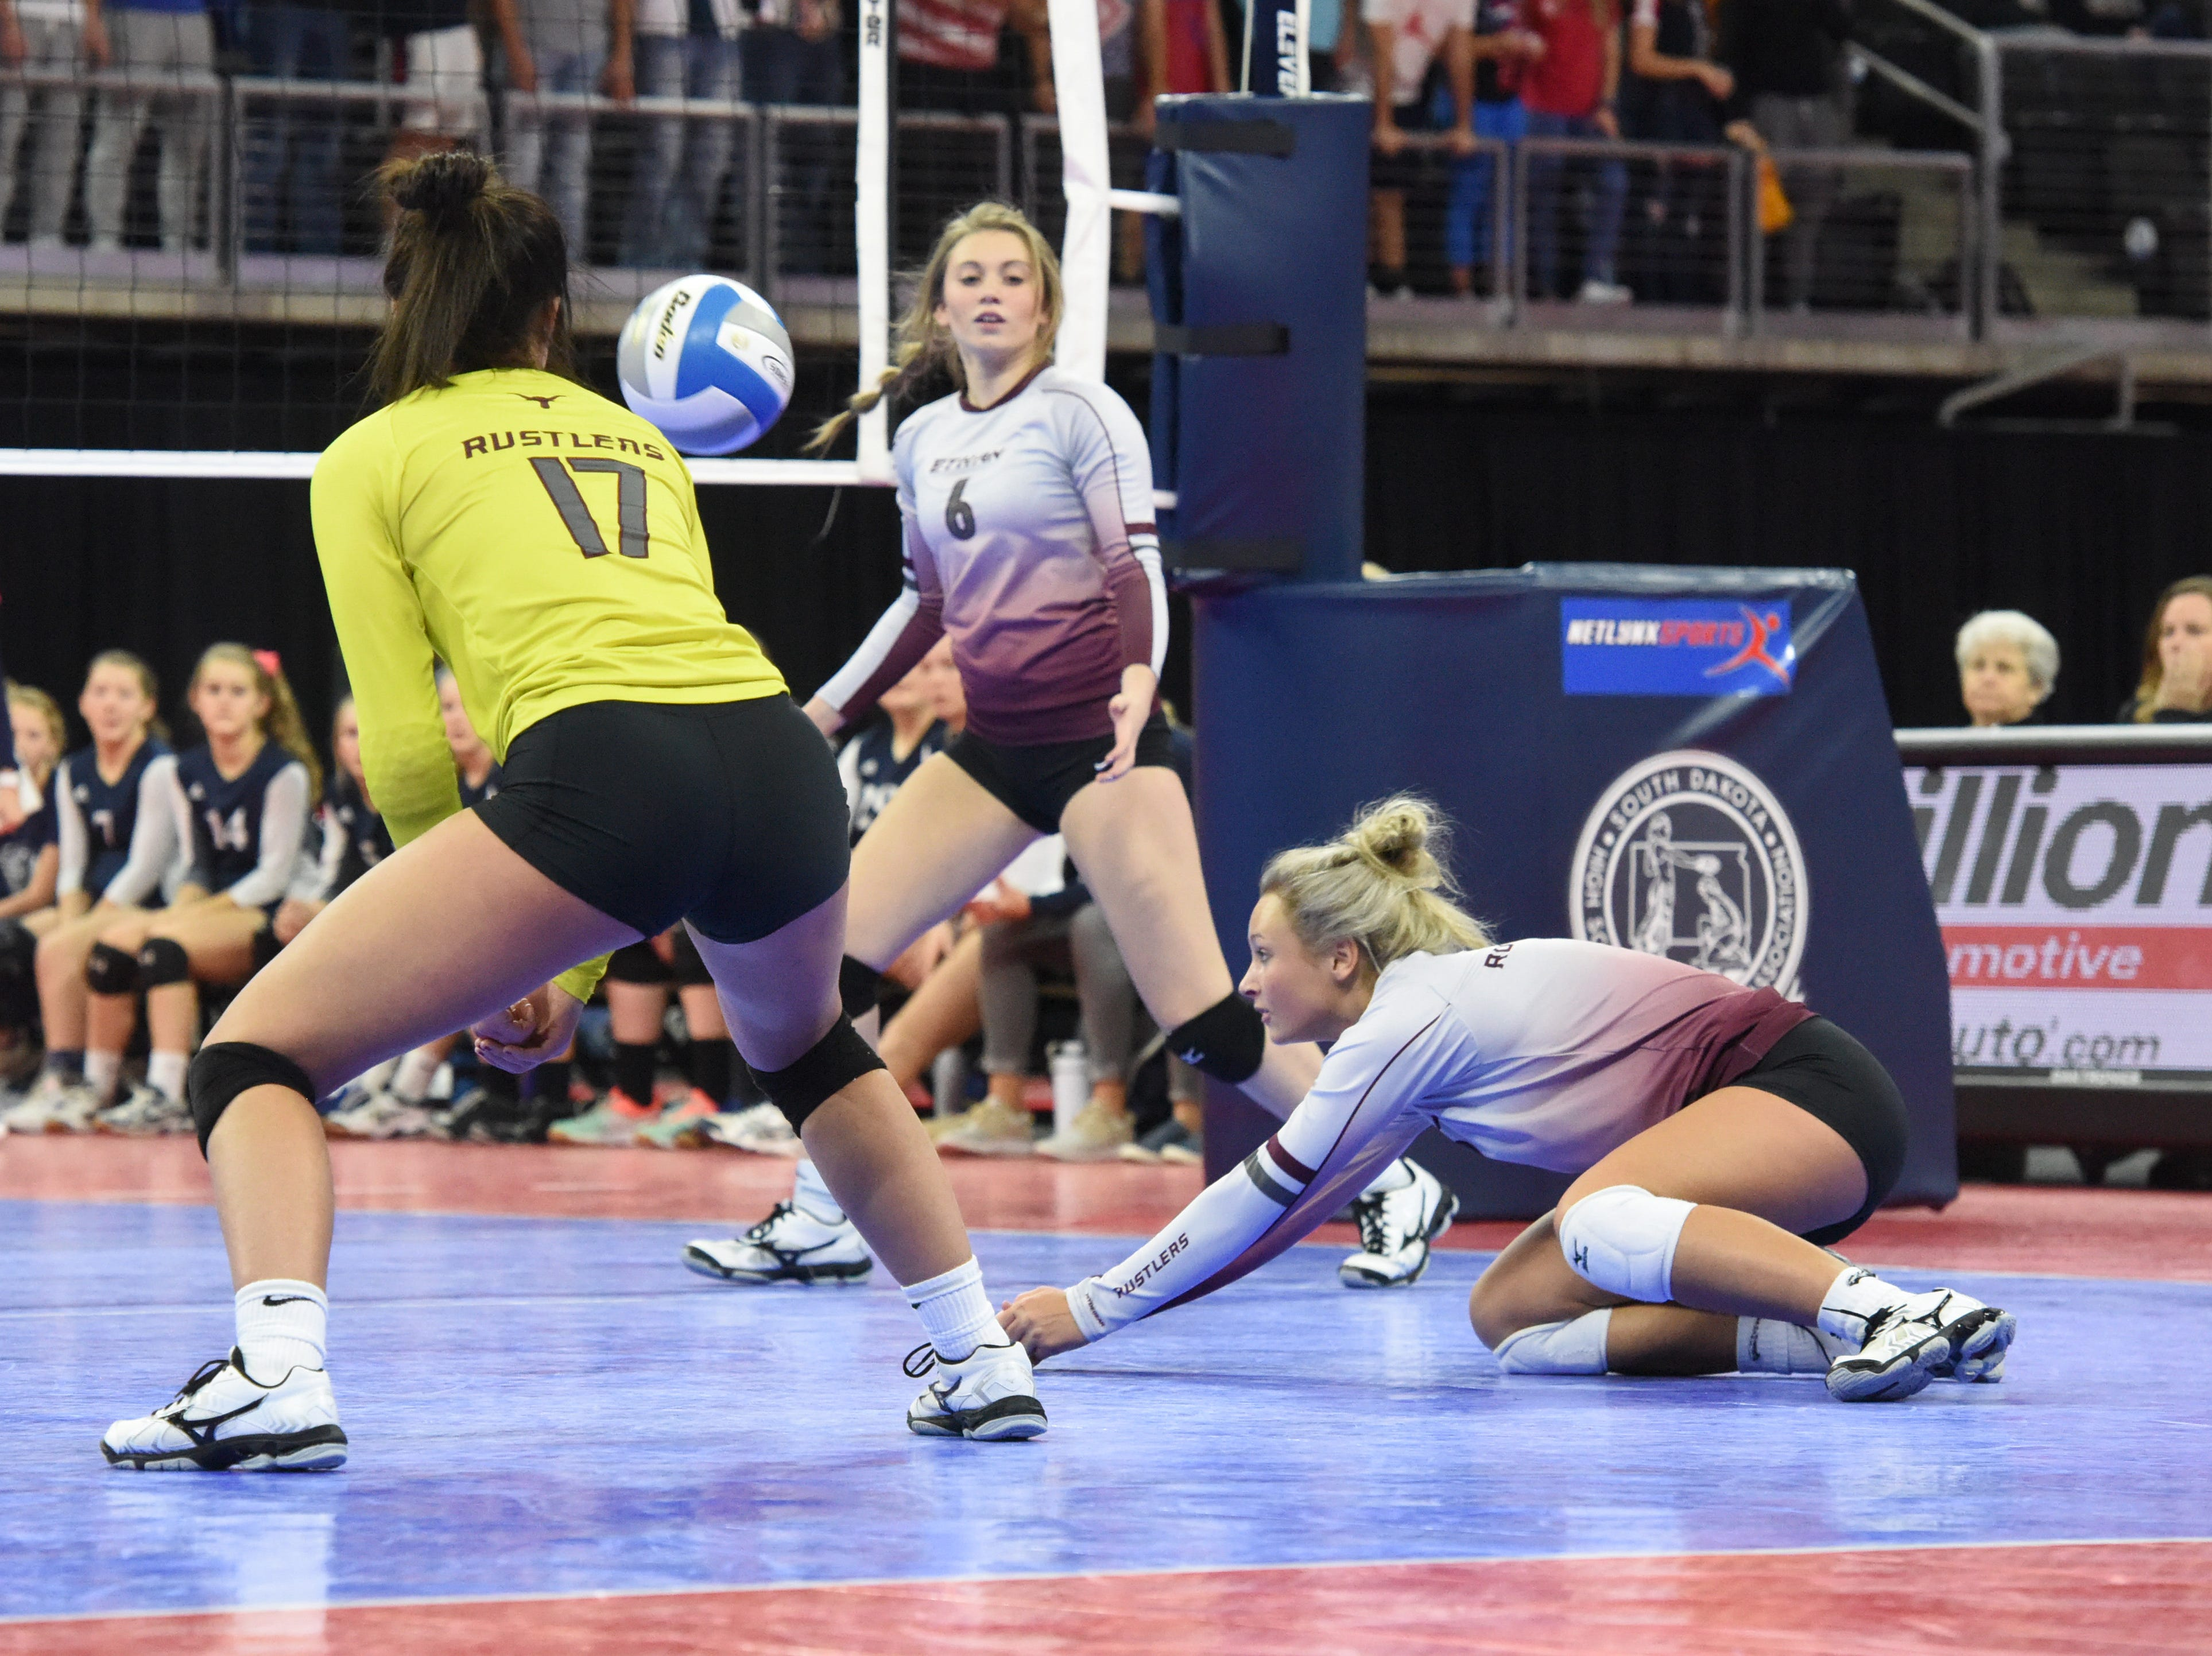 Ethan's Jessica Bartscher (2) bumps the ball during a match against Burke, Friday, Nov. 16, 2018, at the Denny Sanford Premier Center in Sioux Falls, S.D.